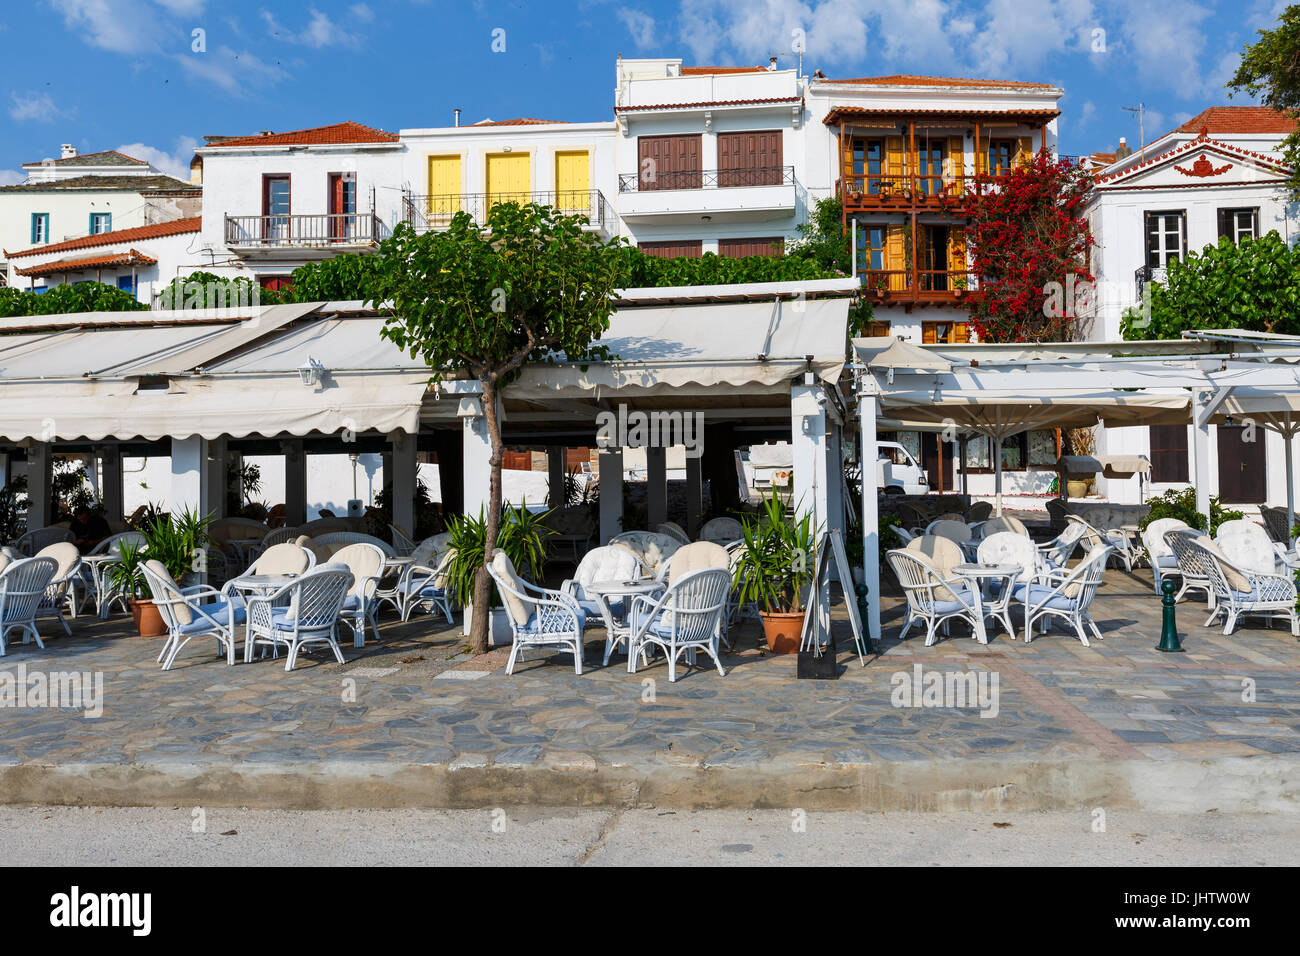 View of coffee shops in Skopelos town, Greece. - Stock Image